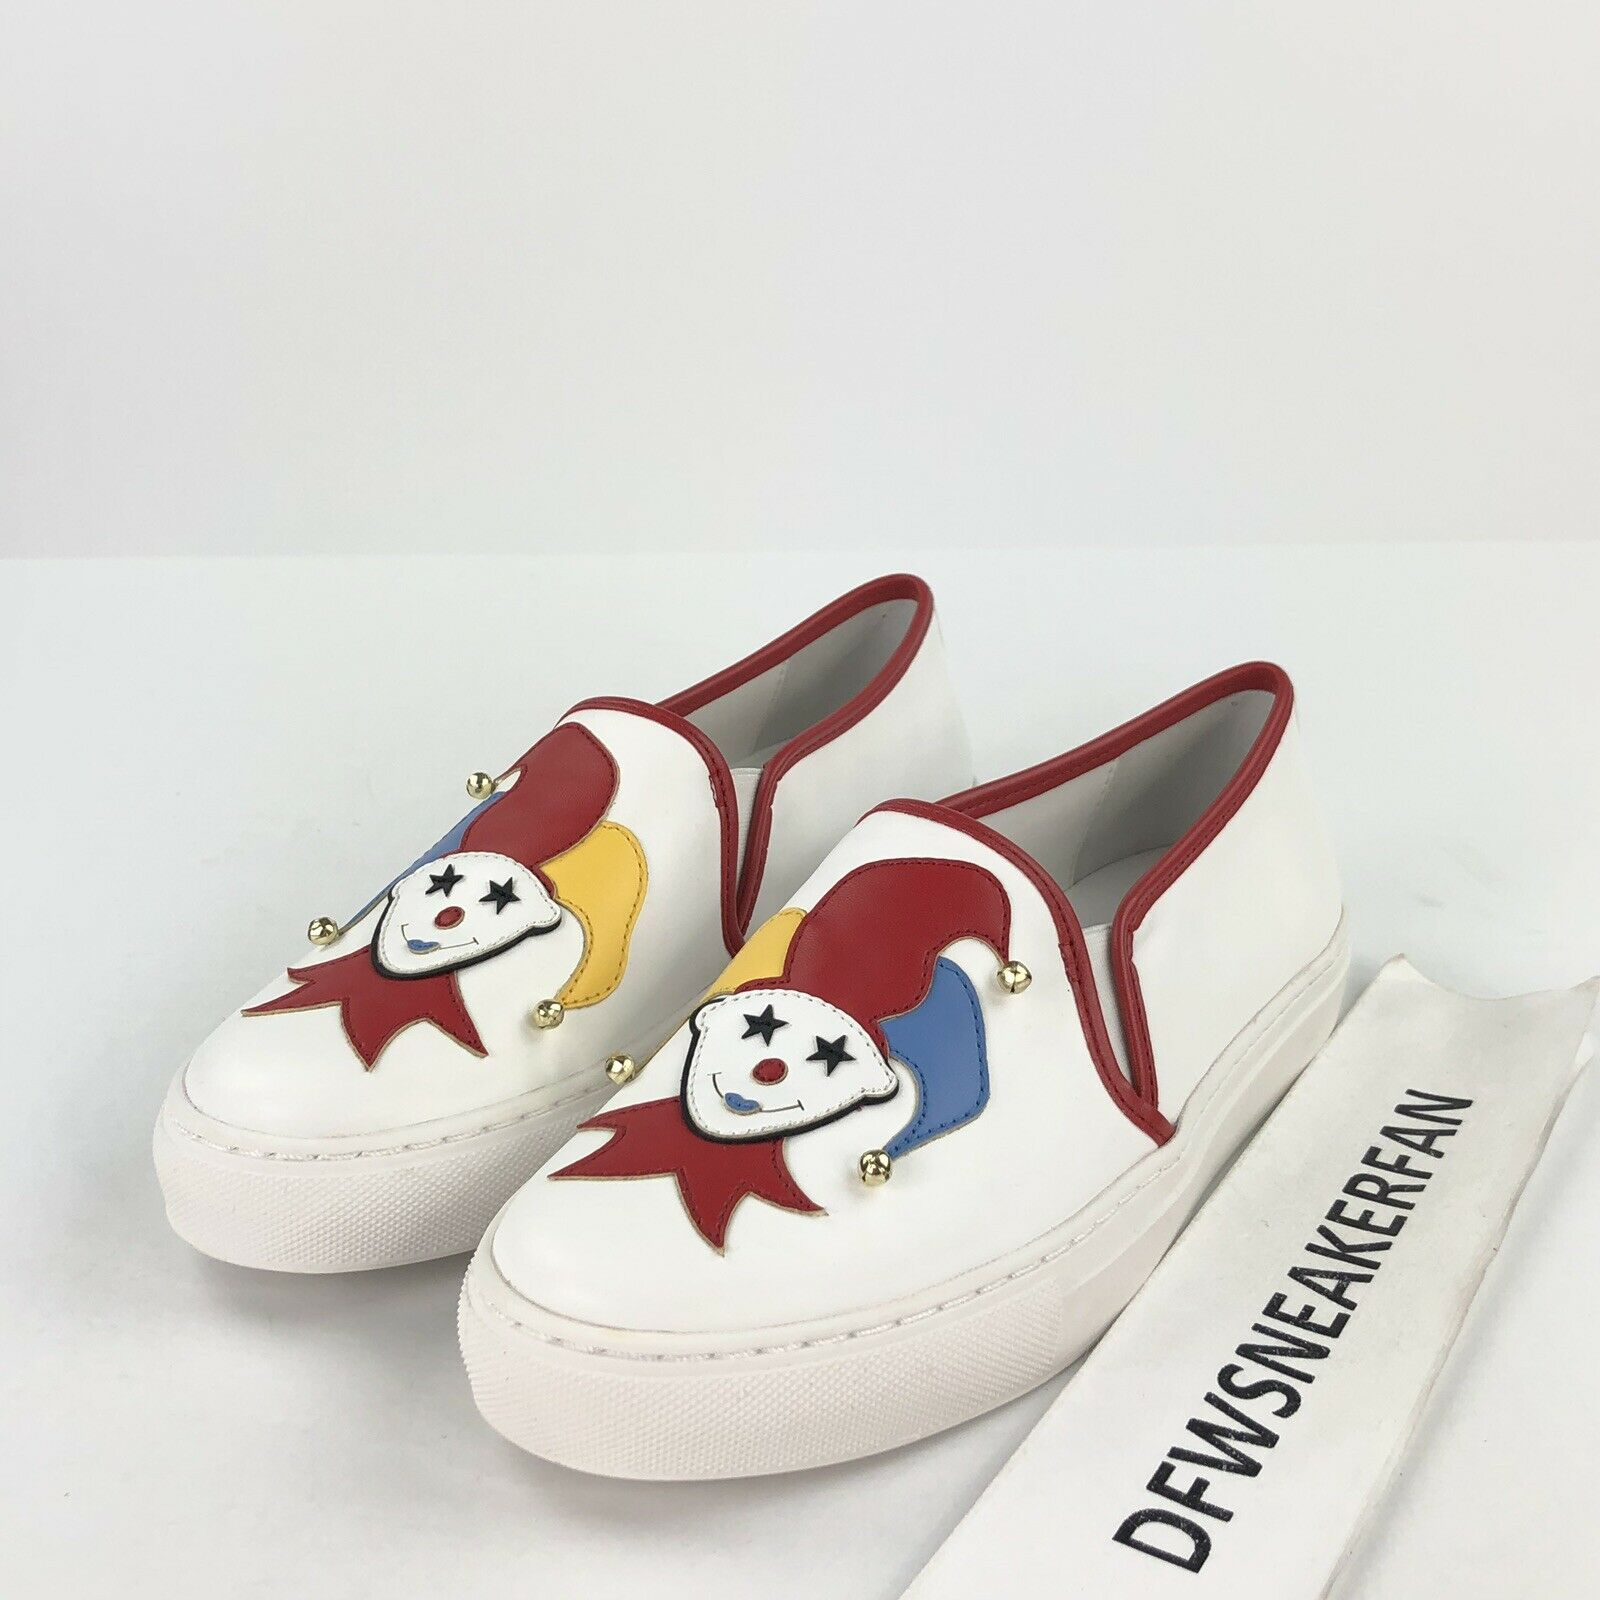 Katy Perry Collection The Mista Women's 6.5 Joker Jester Slip On  shoes KP0312